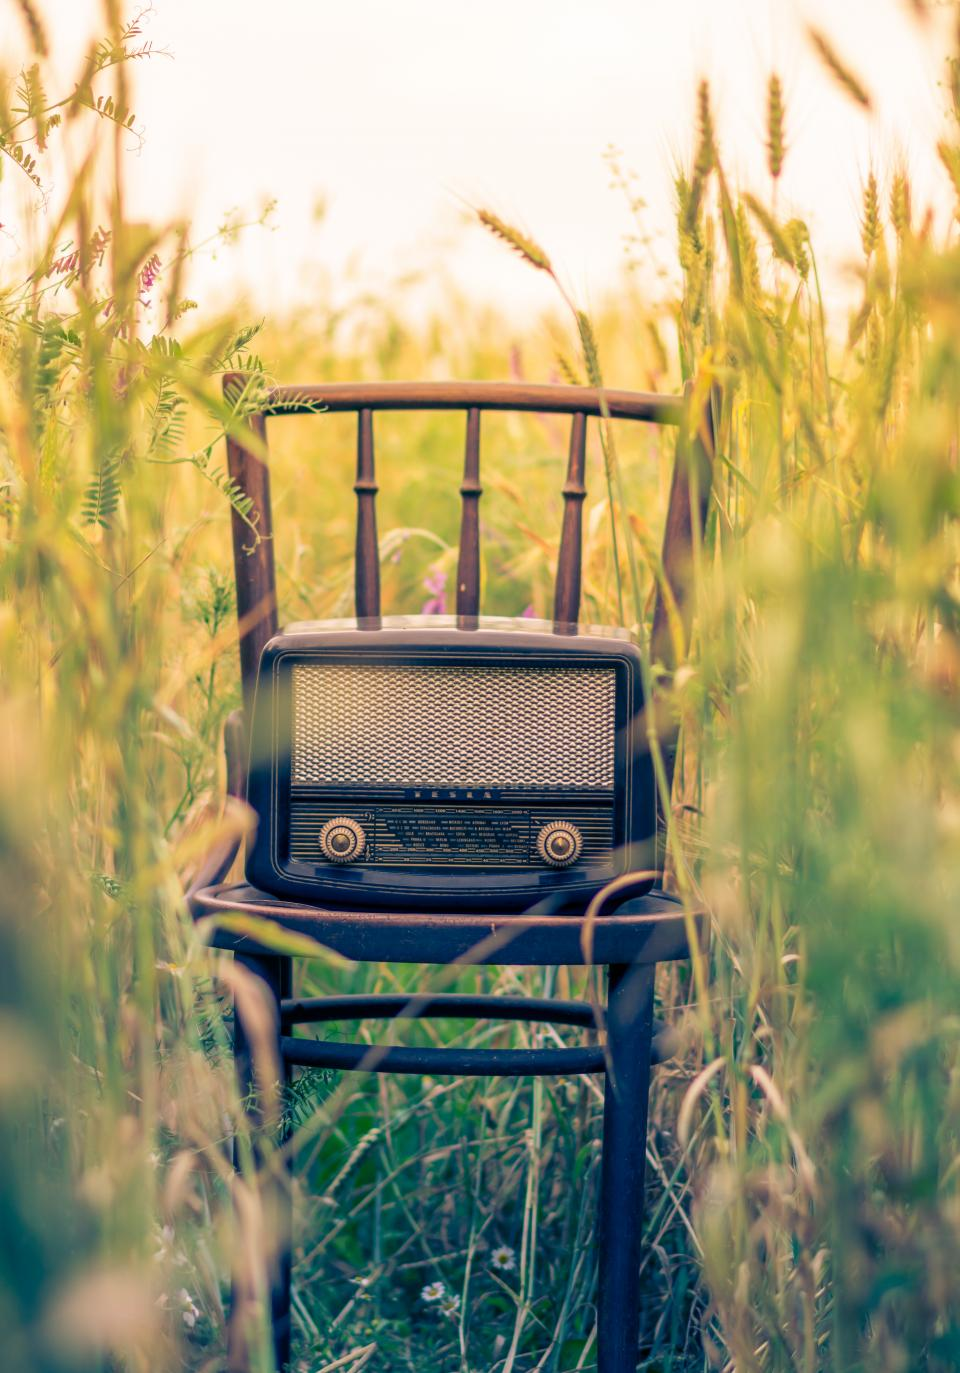 still things items technology vintage radio post modern chair nature field grass wheat green